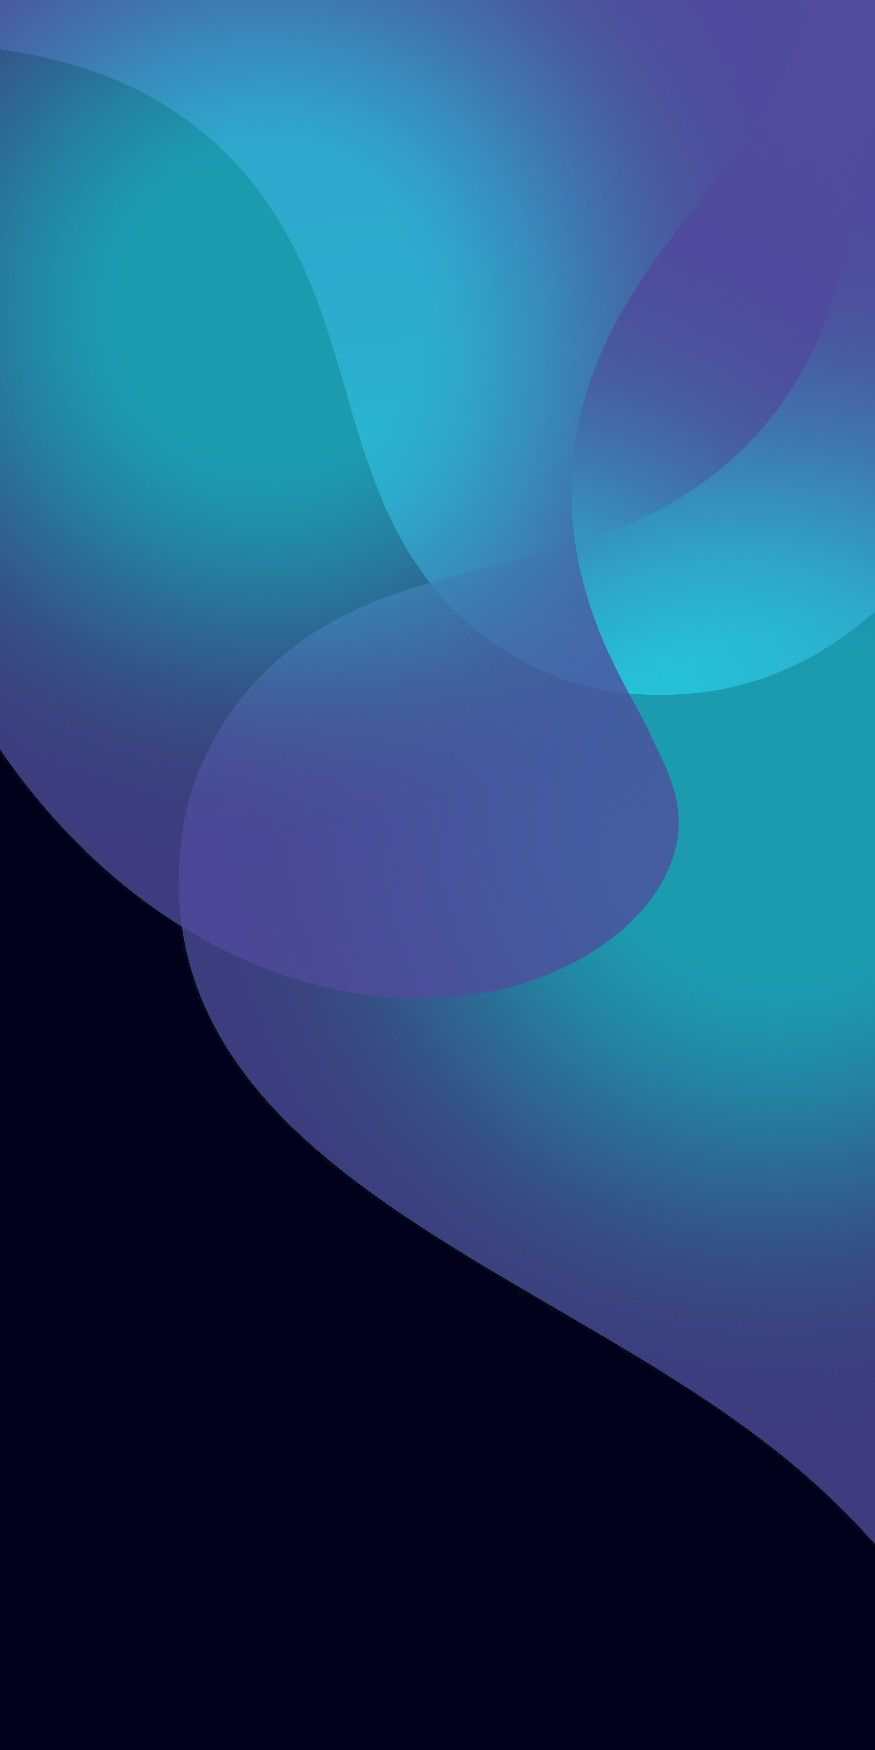 Phone Wallpapers Background In 2020 Abstract Wallpaper Backgrounds Backgrounds Phone Wallpapers Abstract Wallpaper